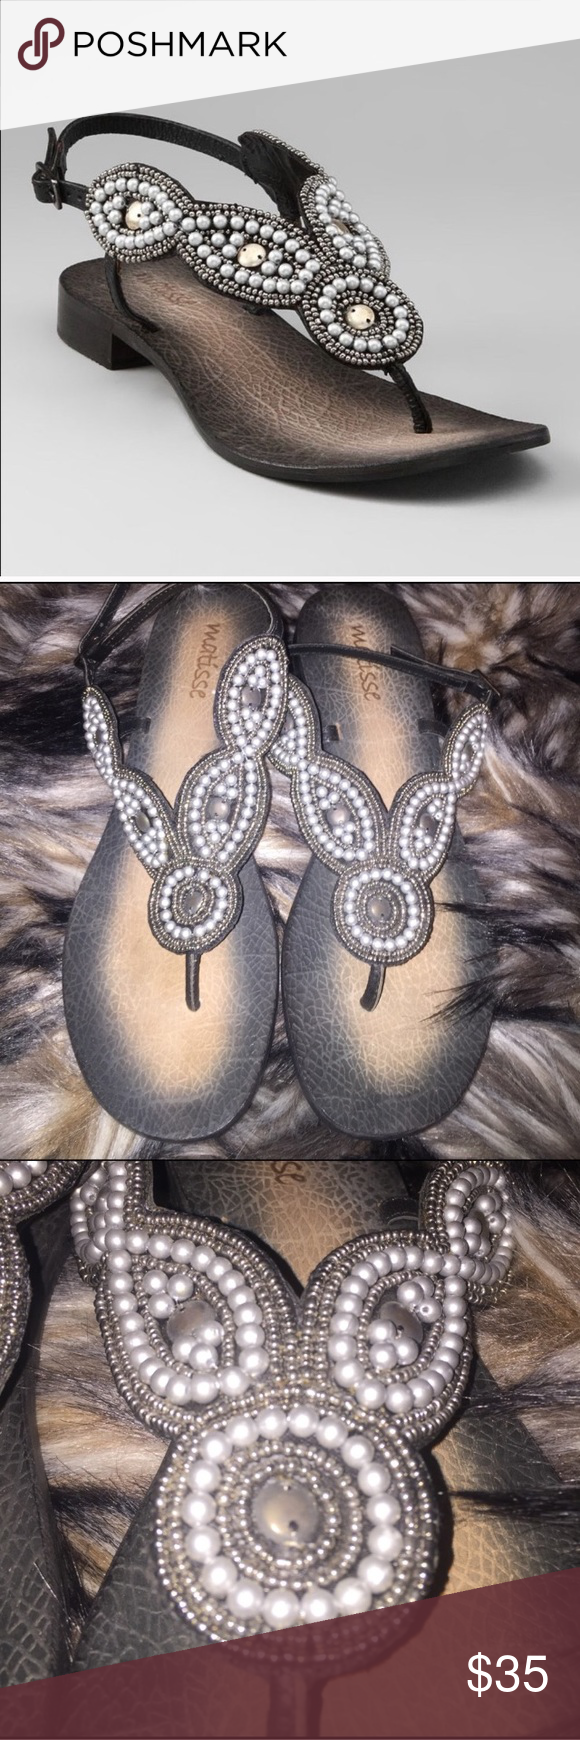 """Matisse Anthropologie Boerne Beaded Sandal 8 Matisse Anthropologie Boerne Beaded Sandals in size 8. These beautiful sandals have only been worn once and are in NEW Condition other than minor scuff on the bottom. Leather upper. Manmade Sole. Heel: 3/4"""".  Thank you! 😊 Anthropologie Shoes Sandals"""